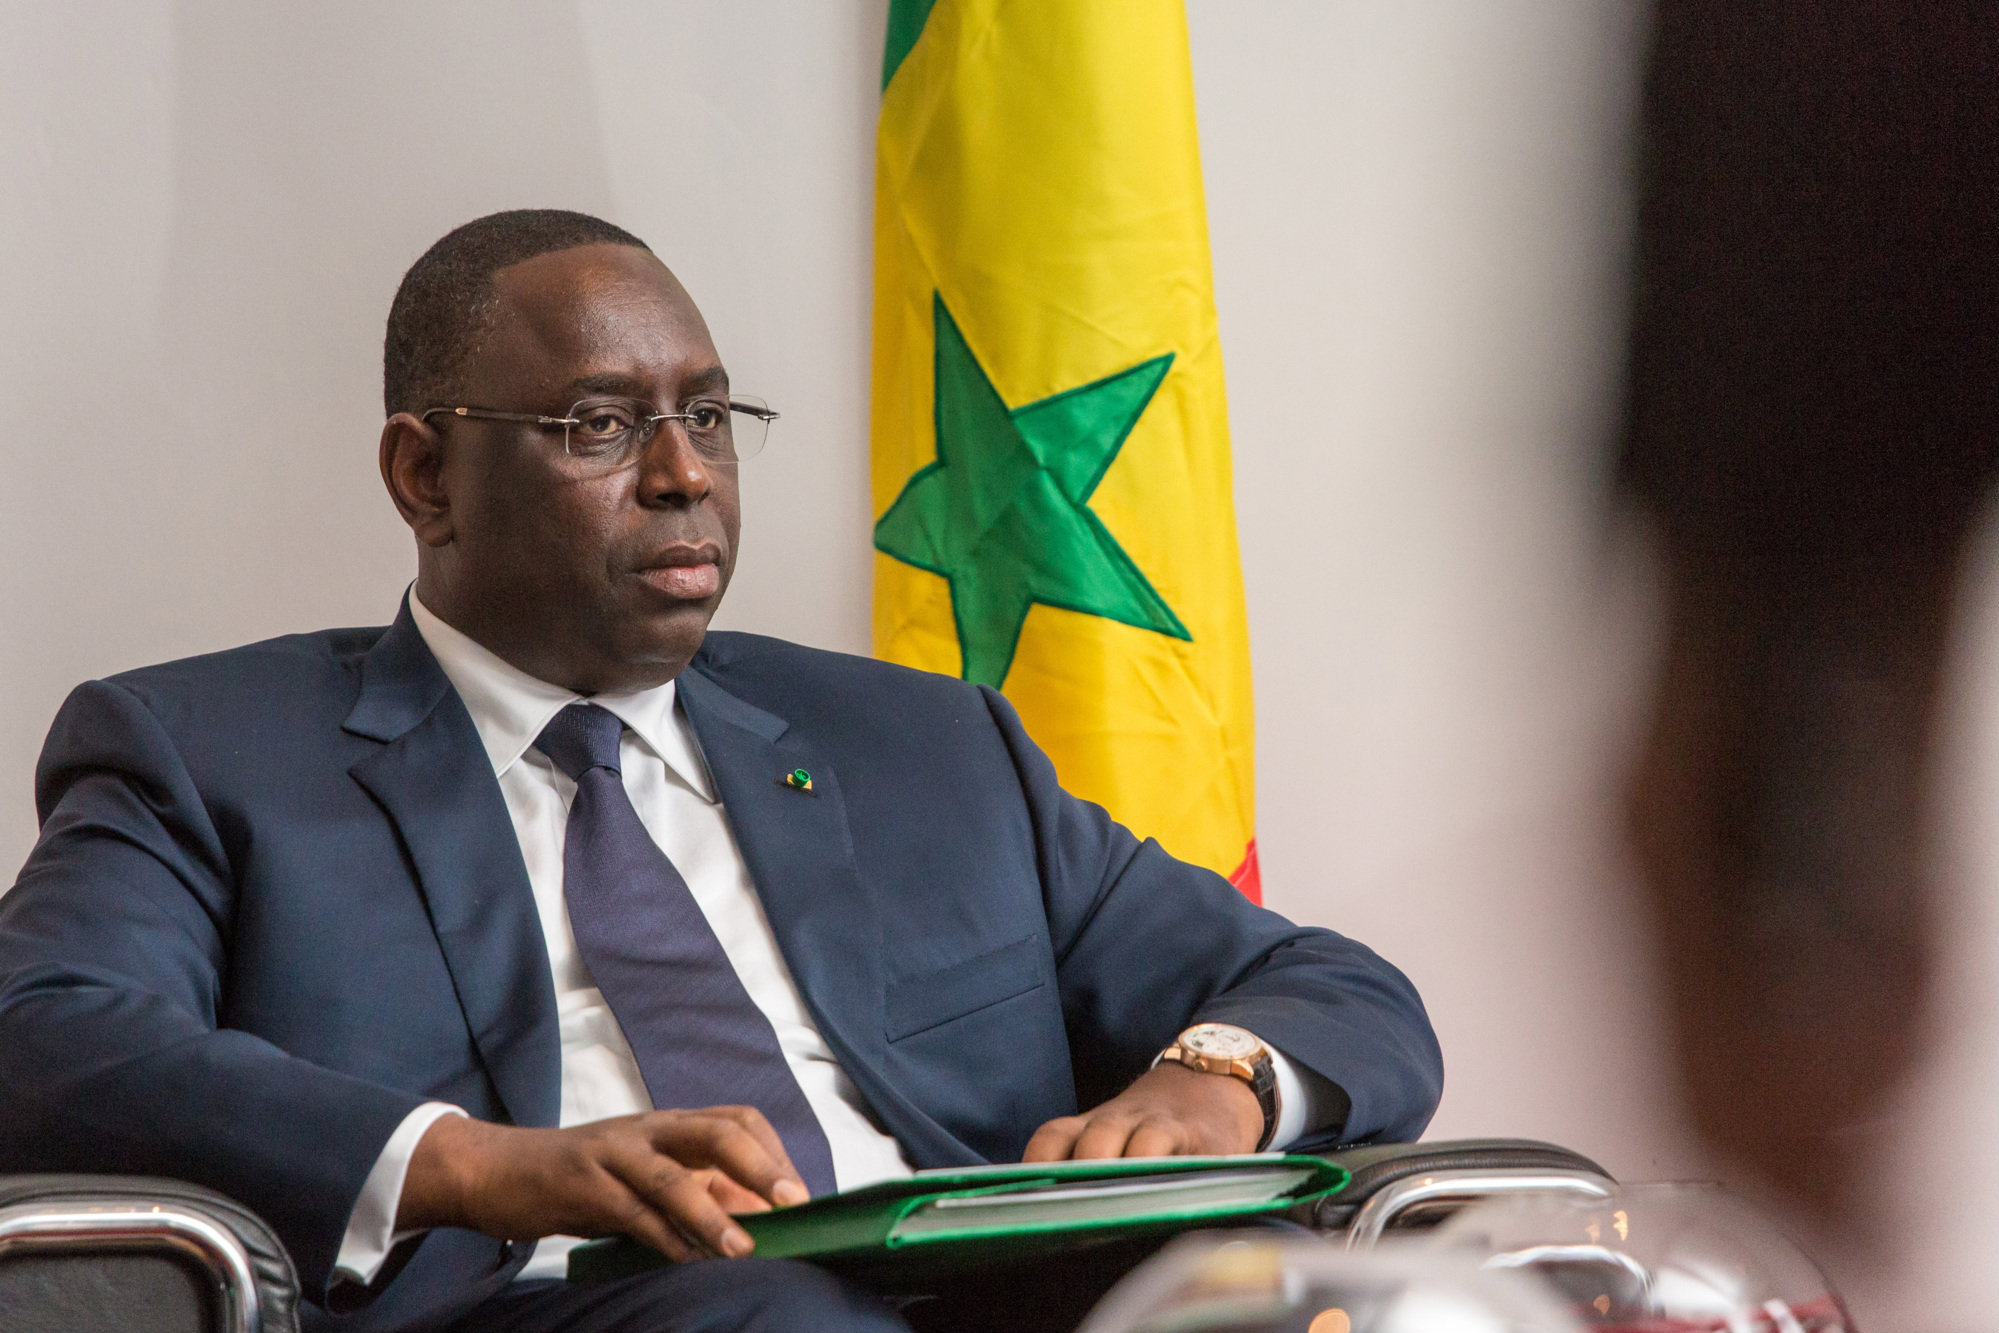 Macky Sall Prize for Dialogue in Africa launched in Kenya ...